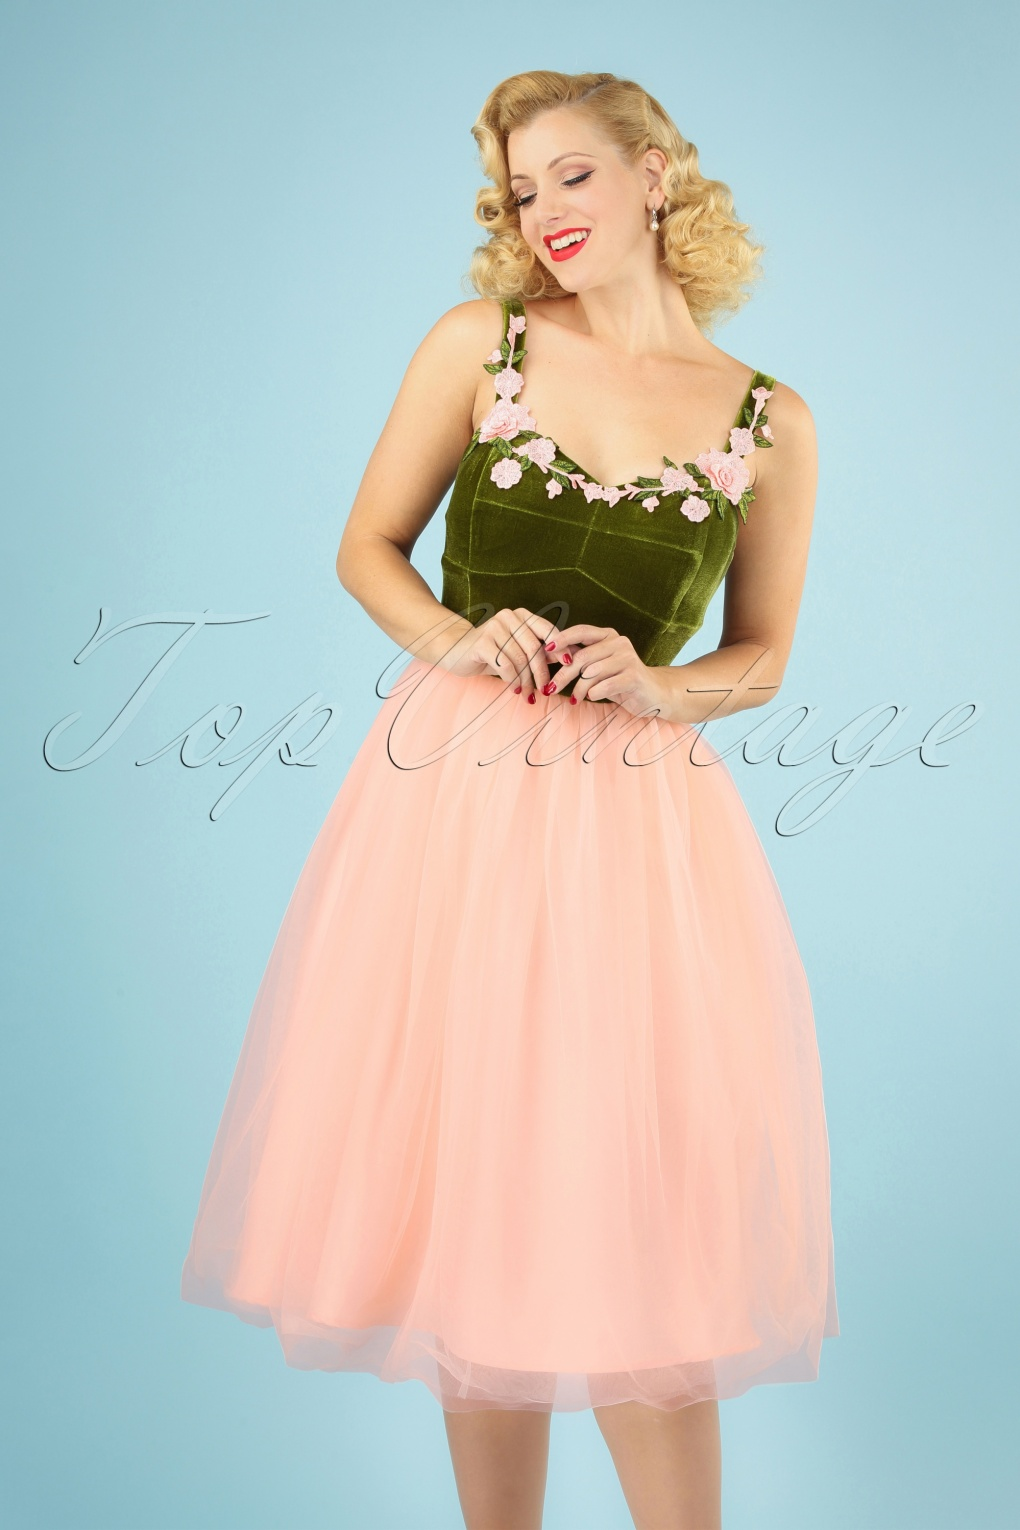 50 Vintage Halloween Costume Ideas 50s Josie Occasion Swing Dress in Pink and Green £92.32 AT vintagedancer.com